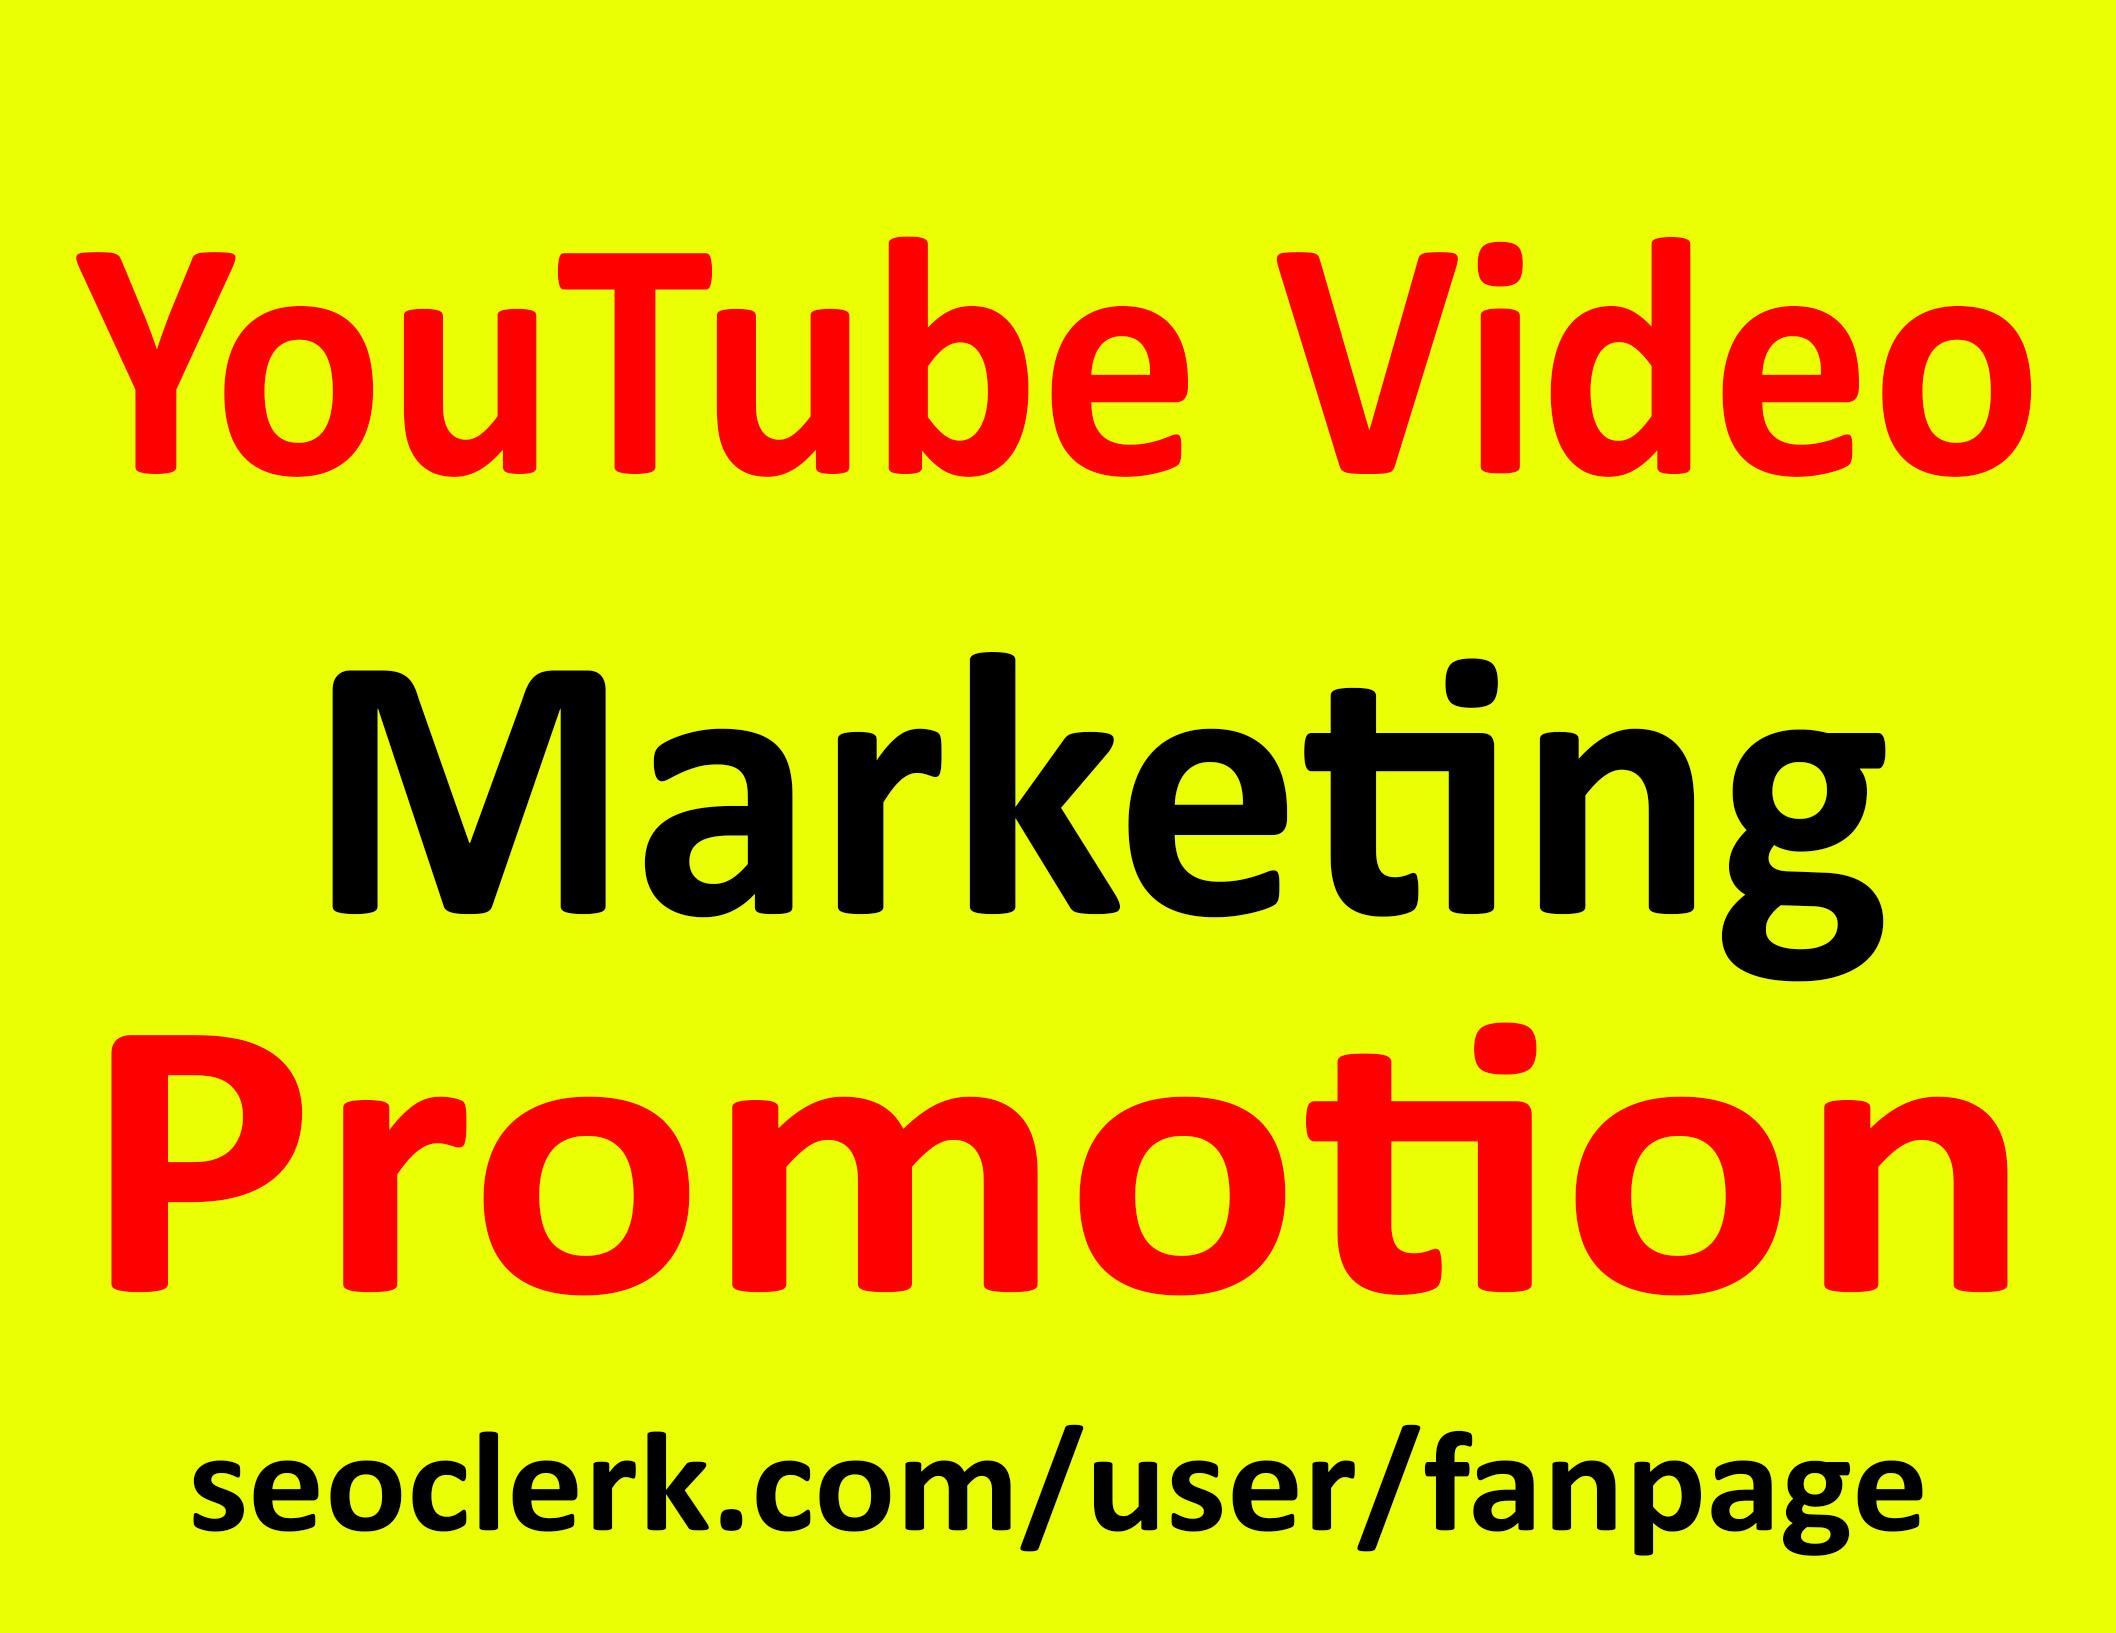 YouTube Video Ranking Promotion Through Real Audience